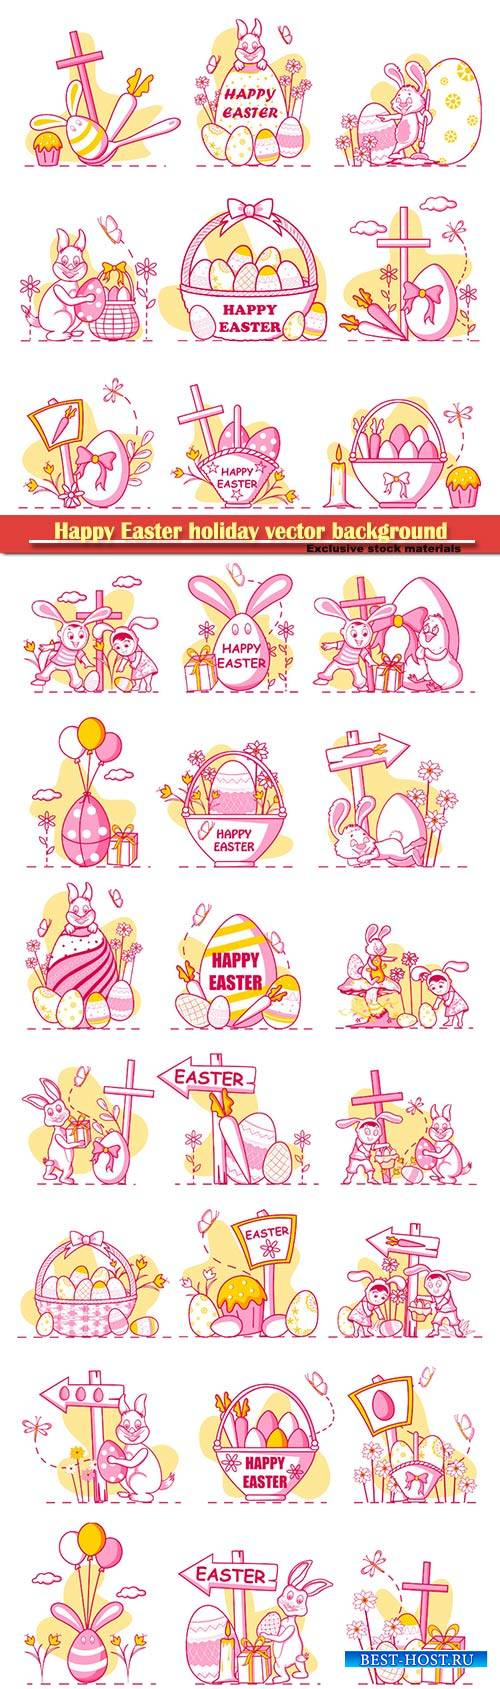 Happy Easter holiday celebration background in vector